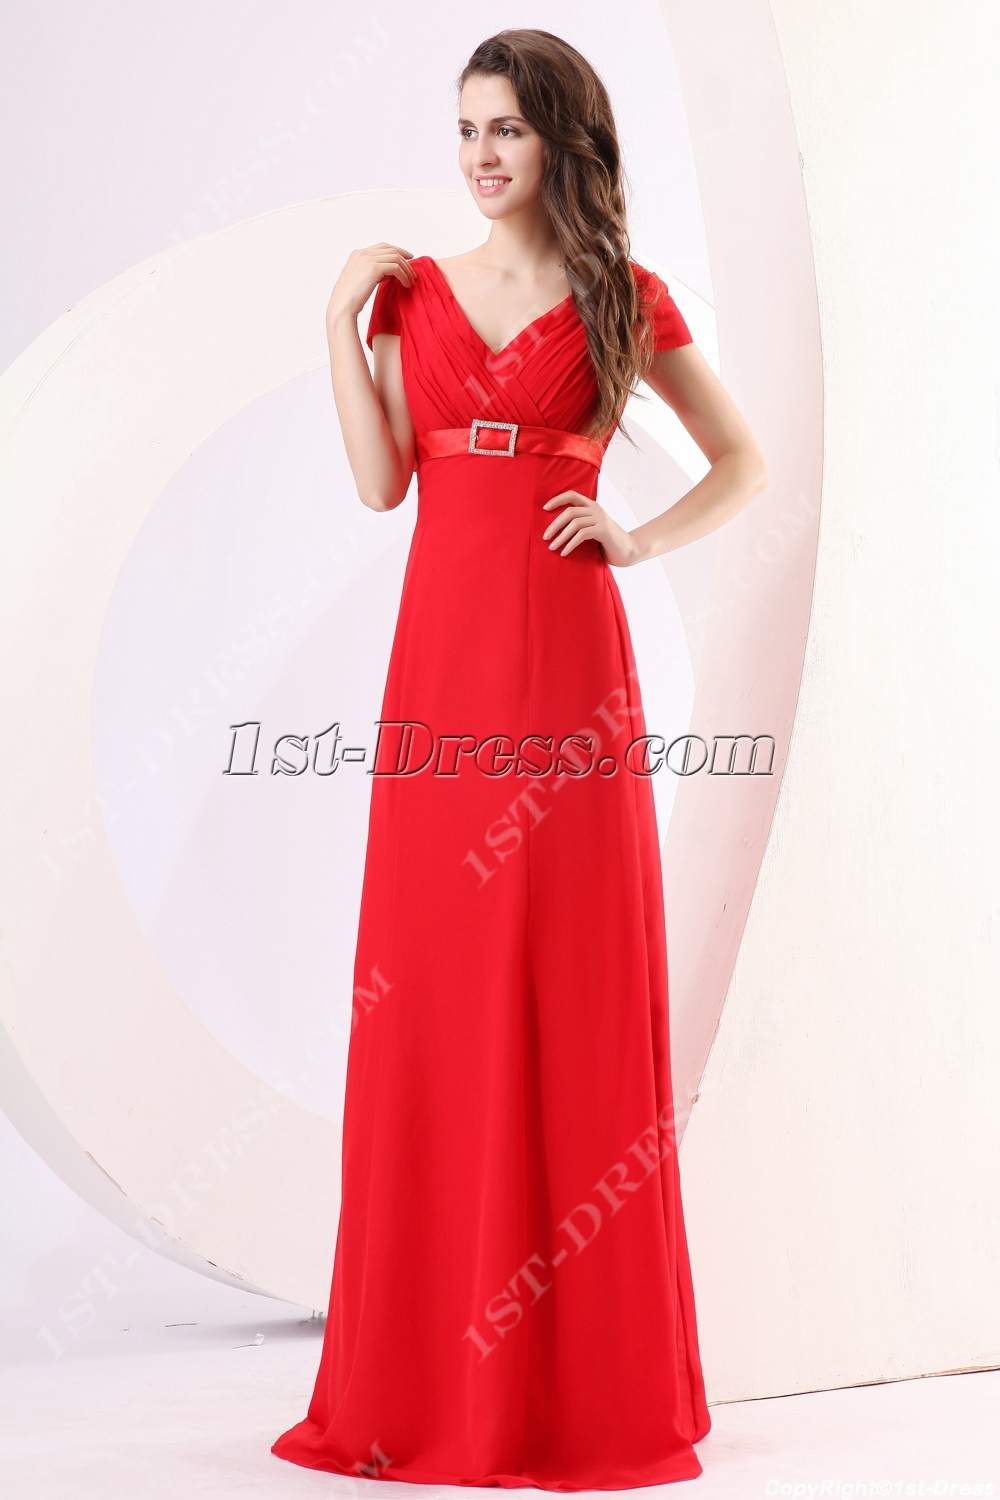 ... > 2013 Prom Dresses >Modest Red Prom Dresses with Short Sleeves